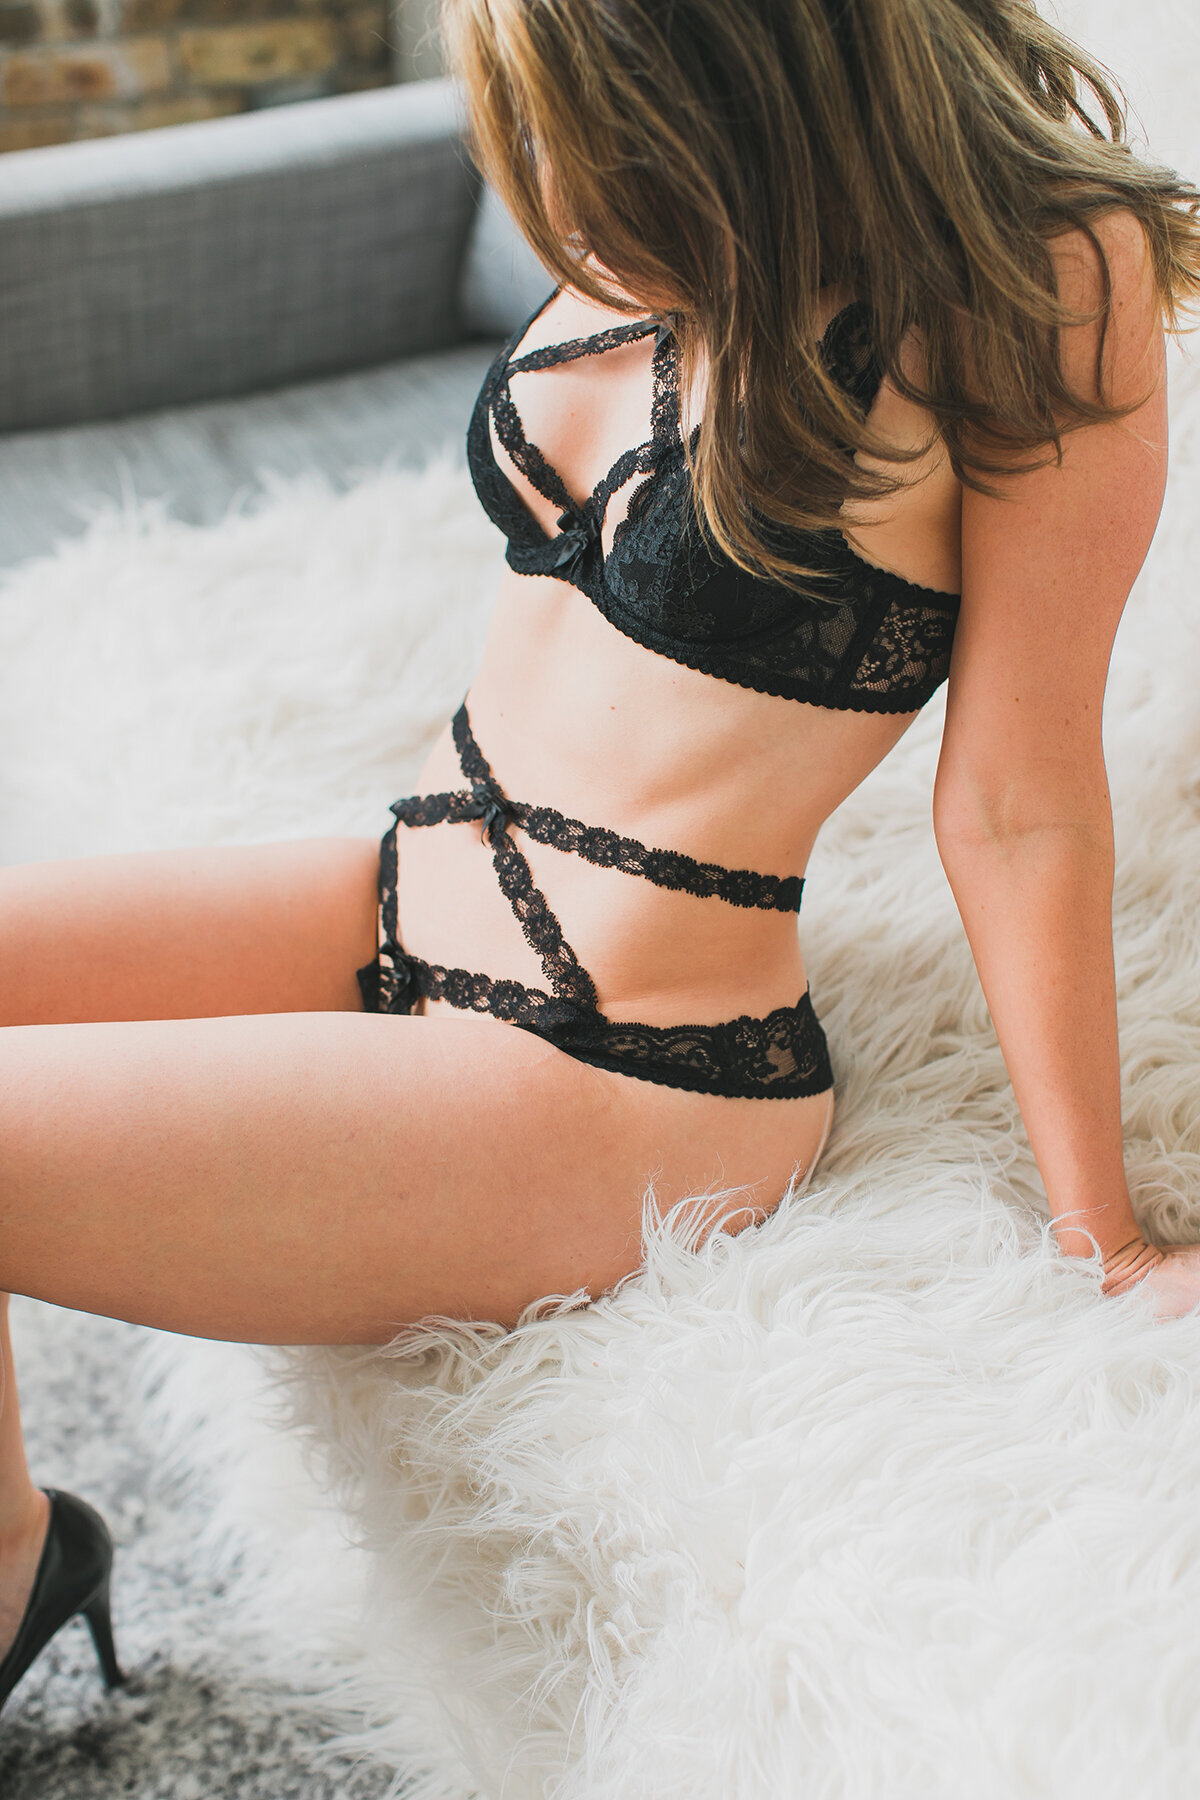 A boudoir photo of a woman wearing Agent Provocateur lingerie